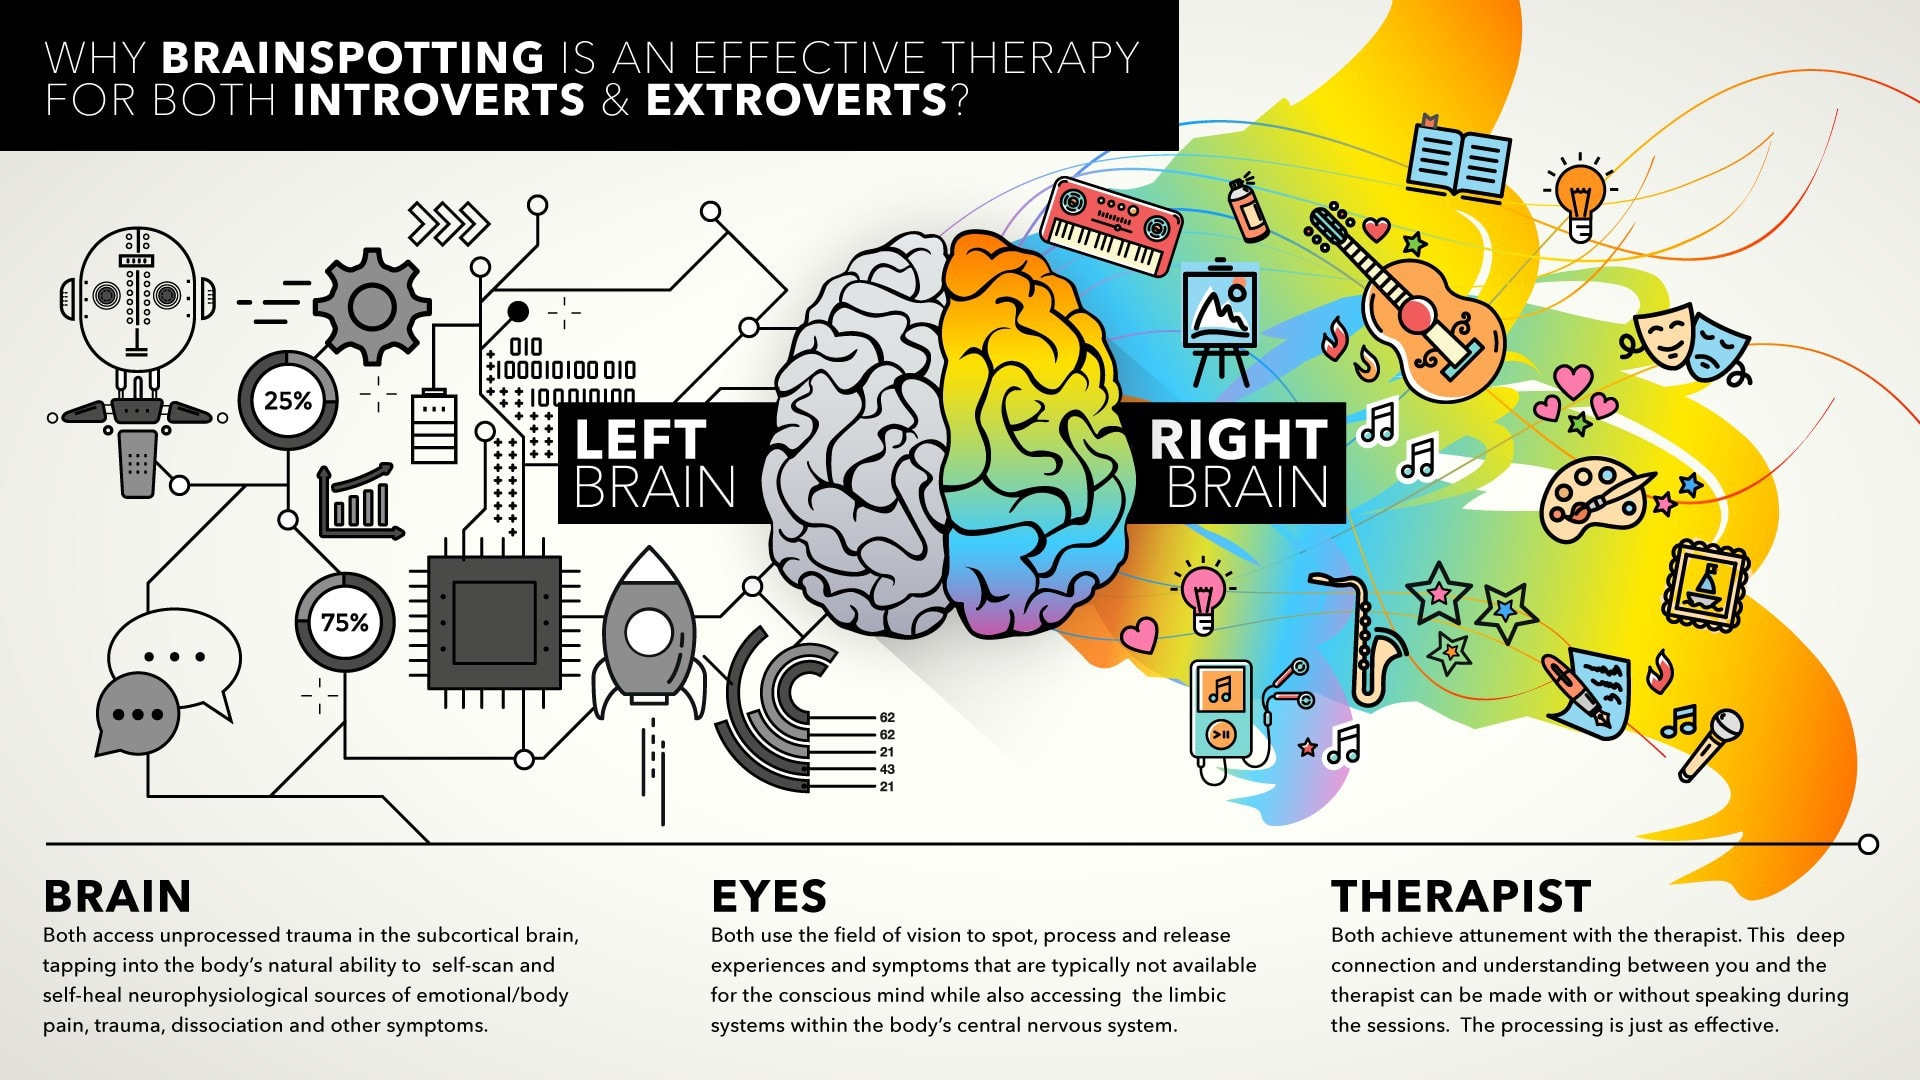 Infographic on why brainspotting is an effective tool for both introverts and extroverts